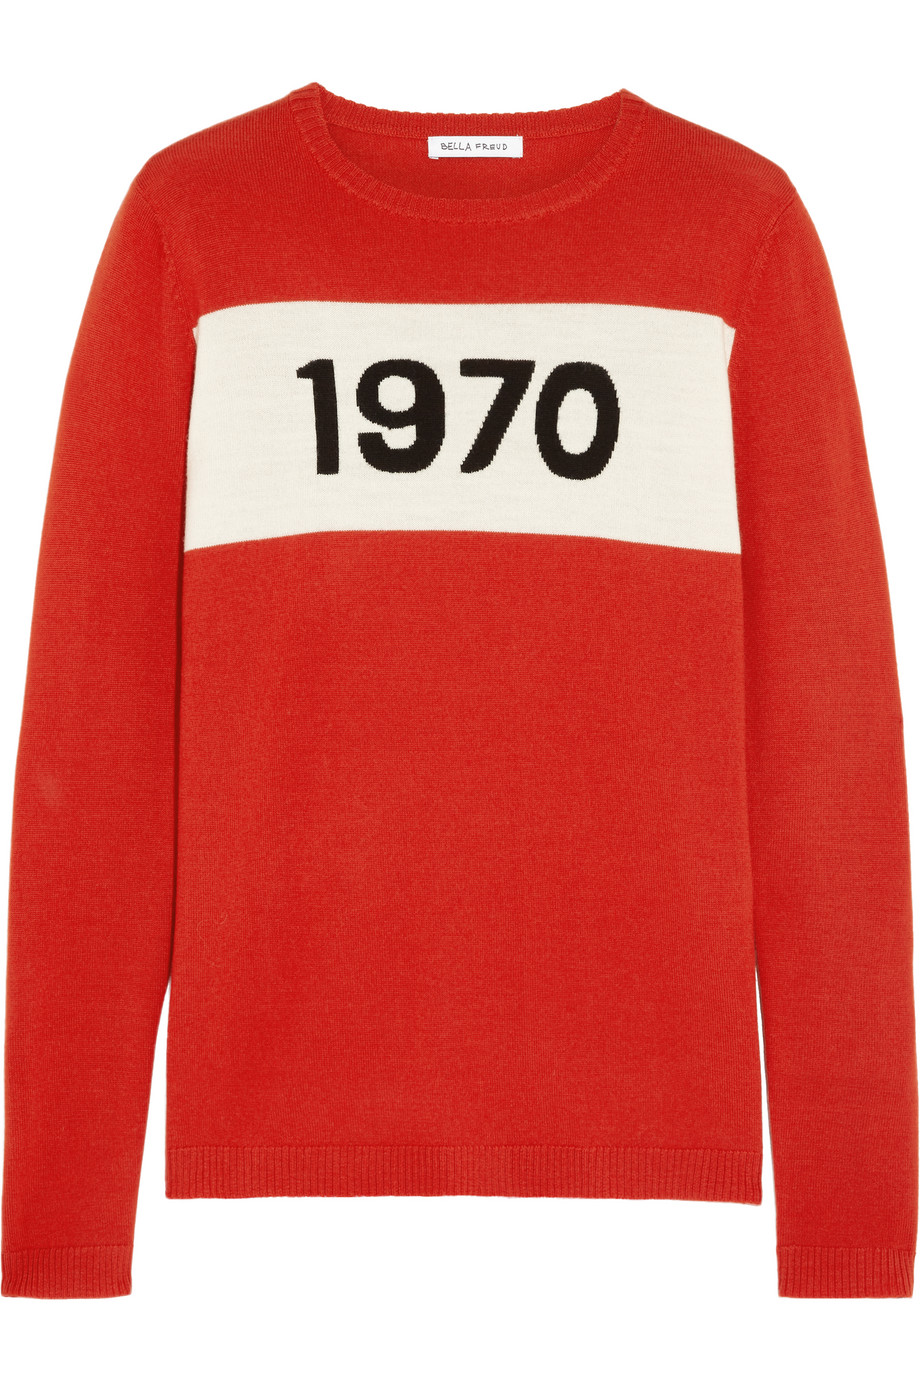 Bella Freud 1970 Intarsia Wool Sweater, Red, Women's, Size: L